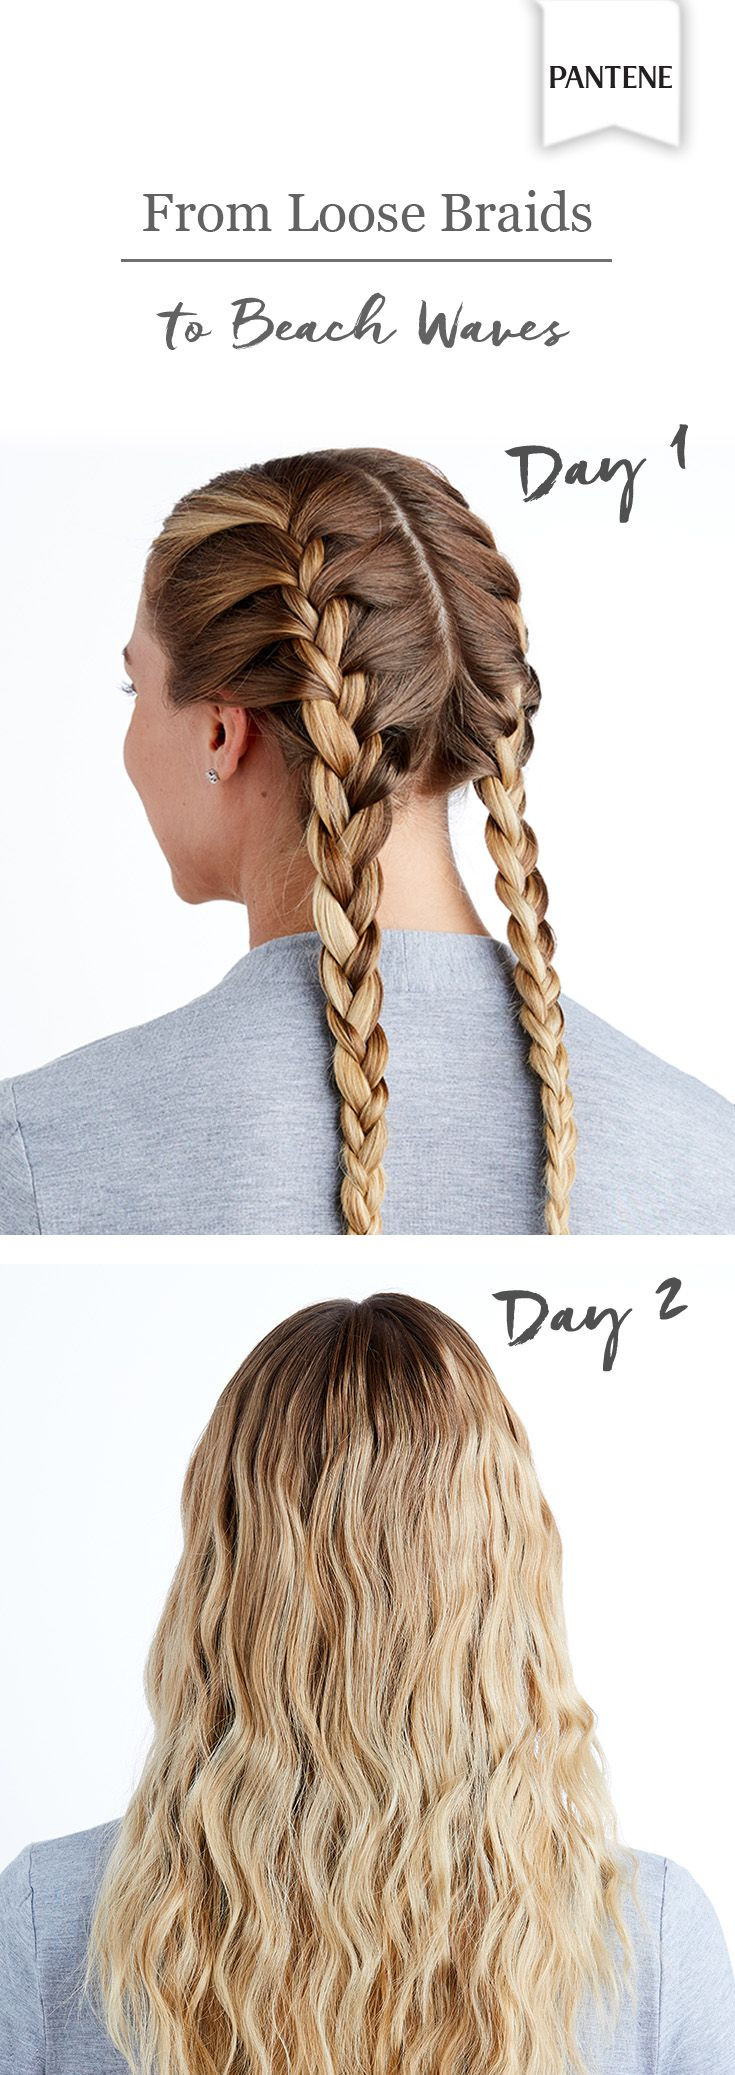 Best ideas about Easy Overnight Hairstyles . Save or Pin The 25 best Overnight braids ideas on Pinterest Now.